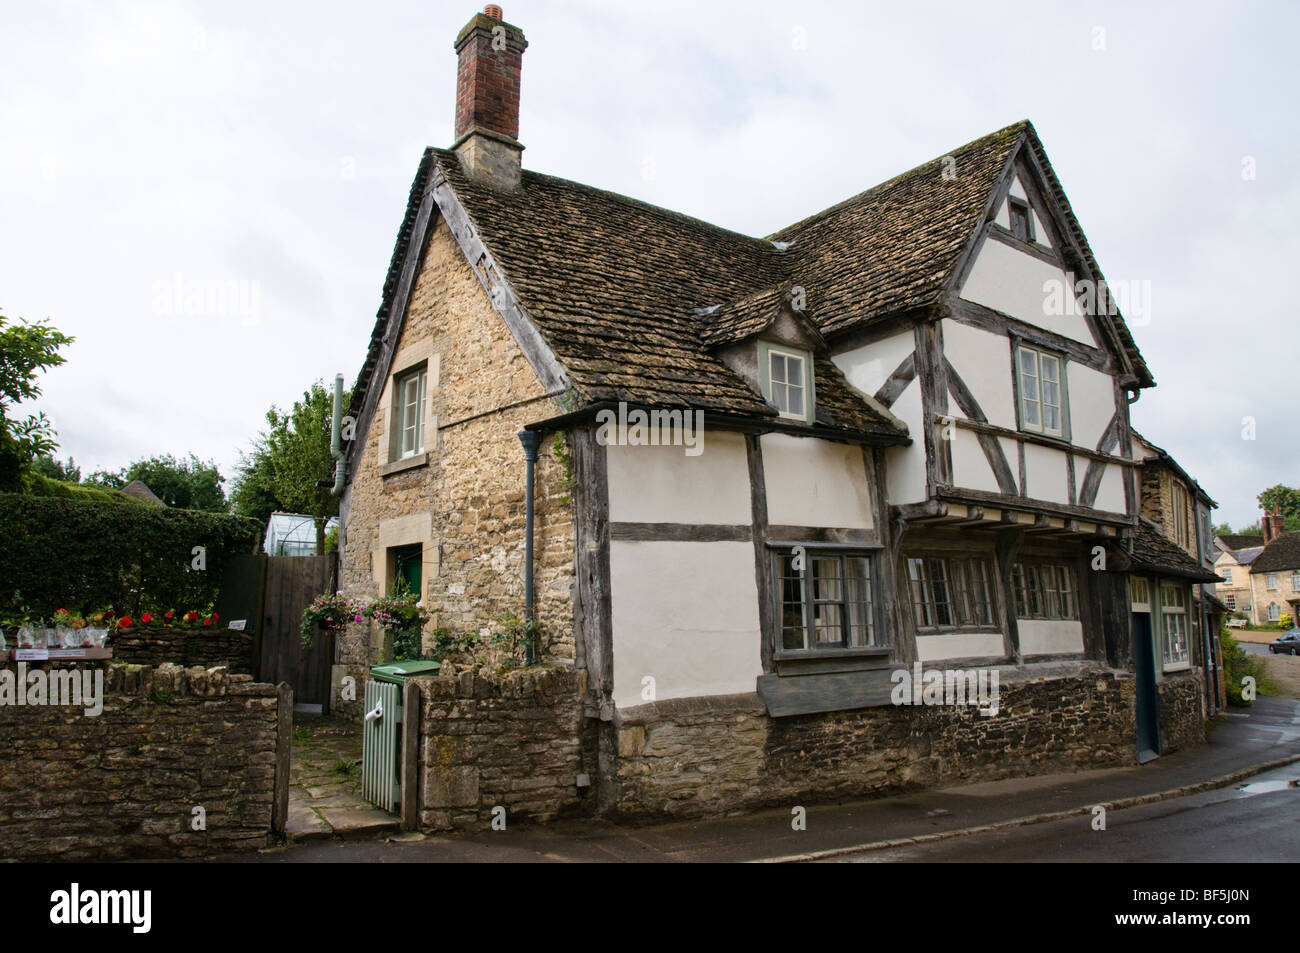 Half timber frame house, Lacock, Wiltshire, Cotswolds, UK - Stock Image